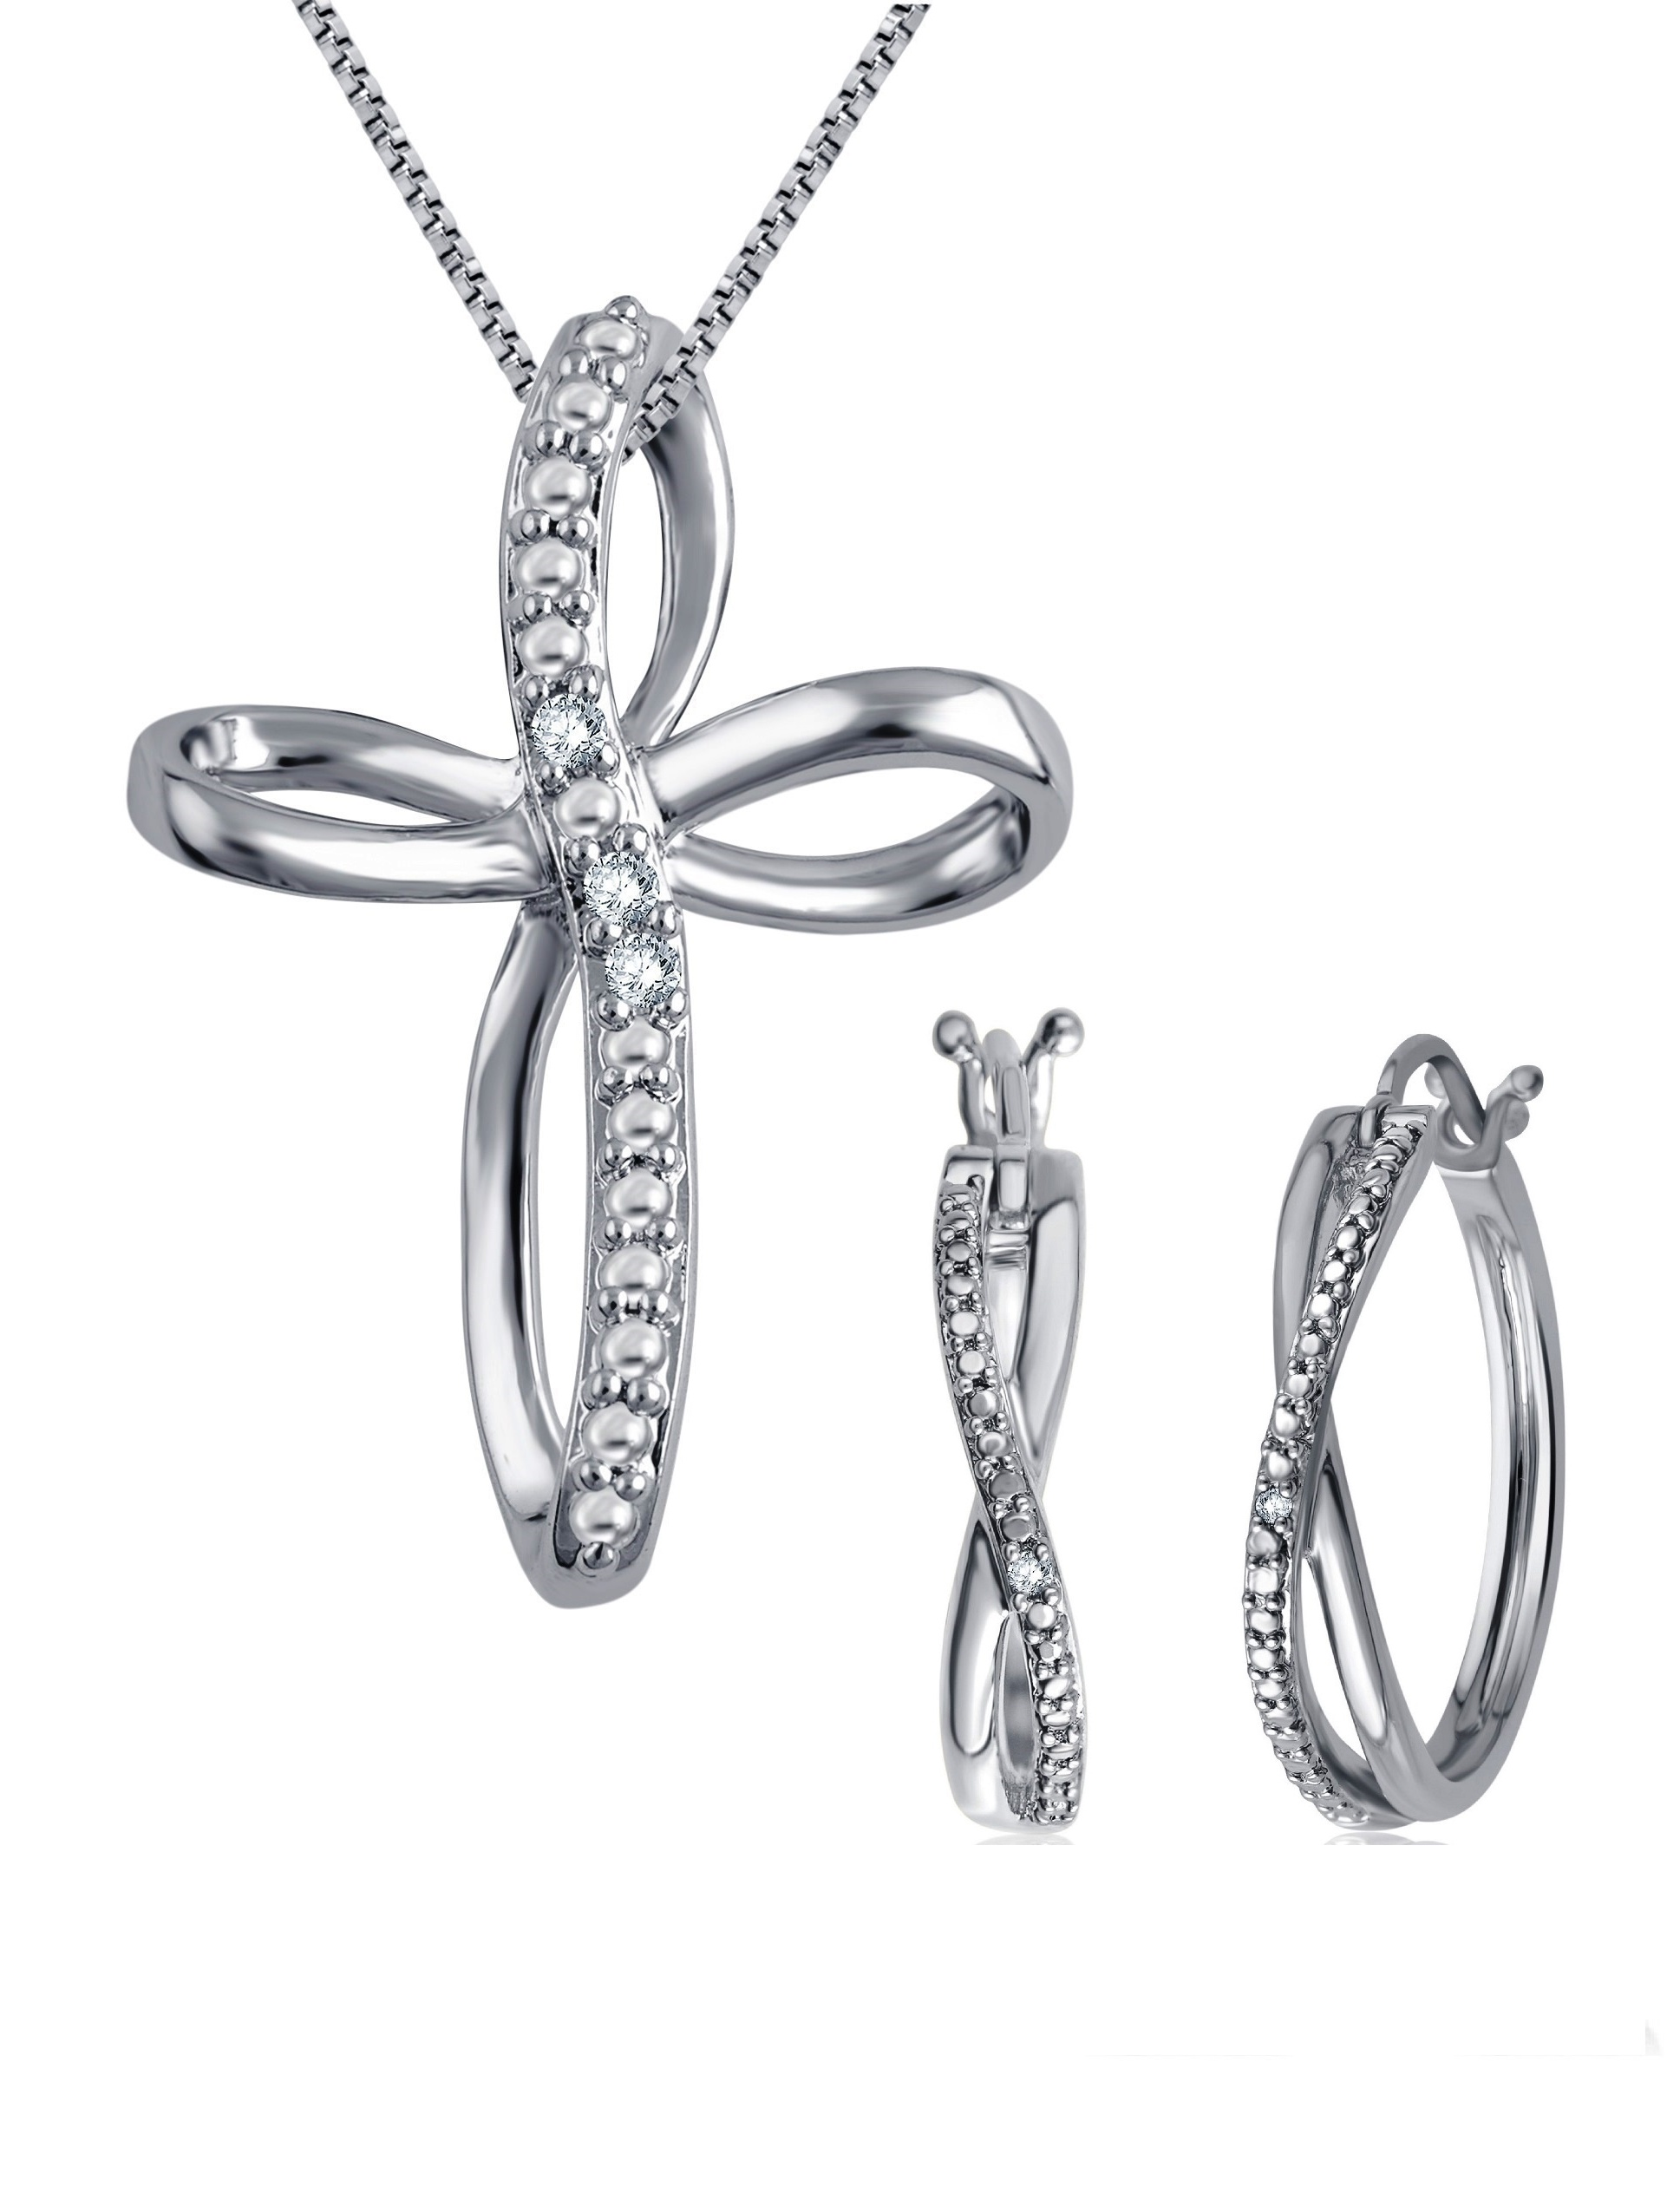 Gorgeous 0.25 Carat Diamond Accent 2 Piece Hoop Criss Cross  Necklace & Earrings Set  In 14K White Gold Plated